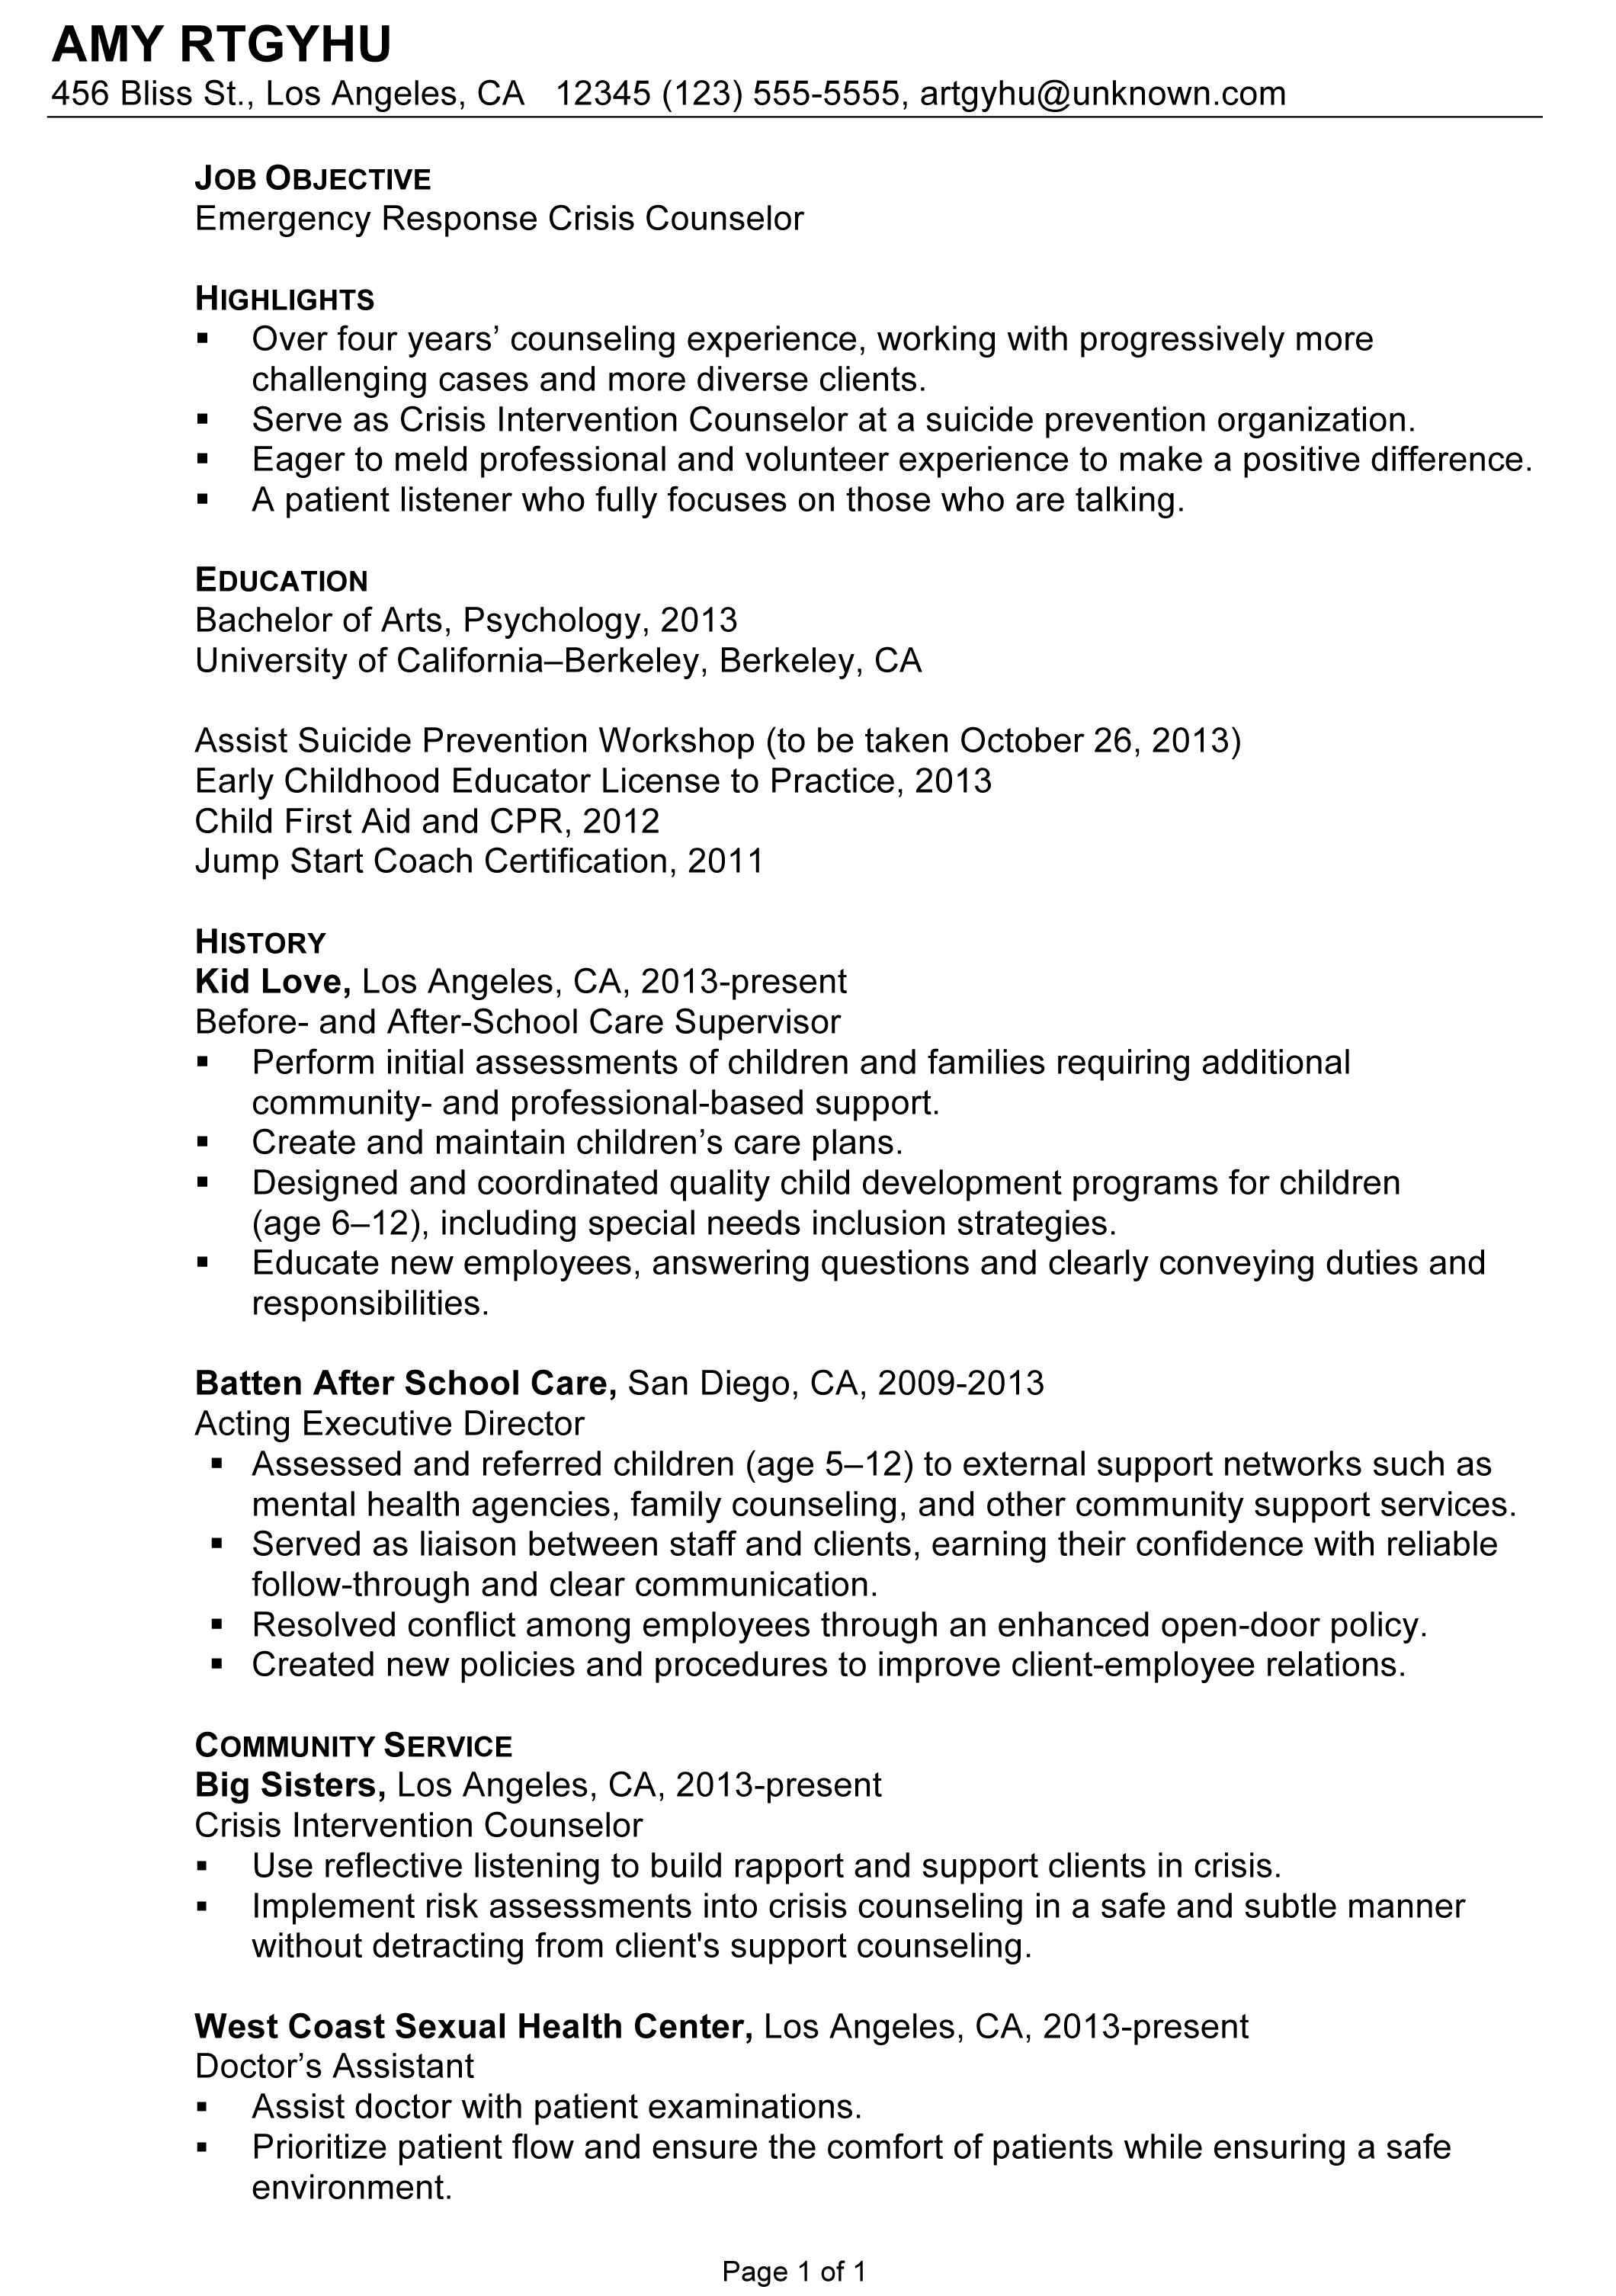 Chronological Resume Sample Emergency Response Crisis Counselor – Chronological Resume Template